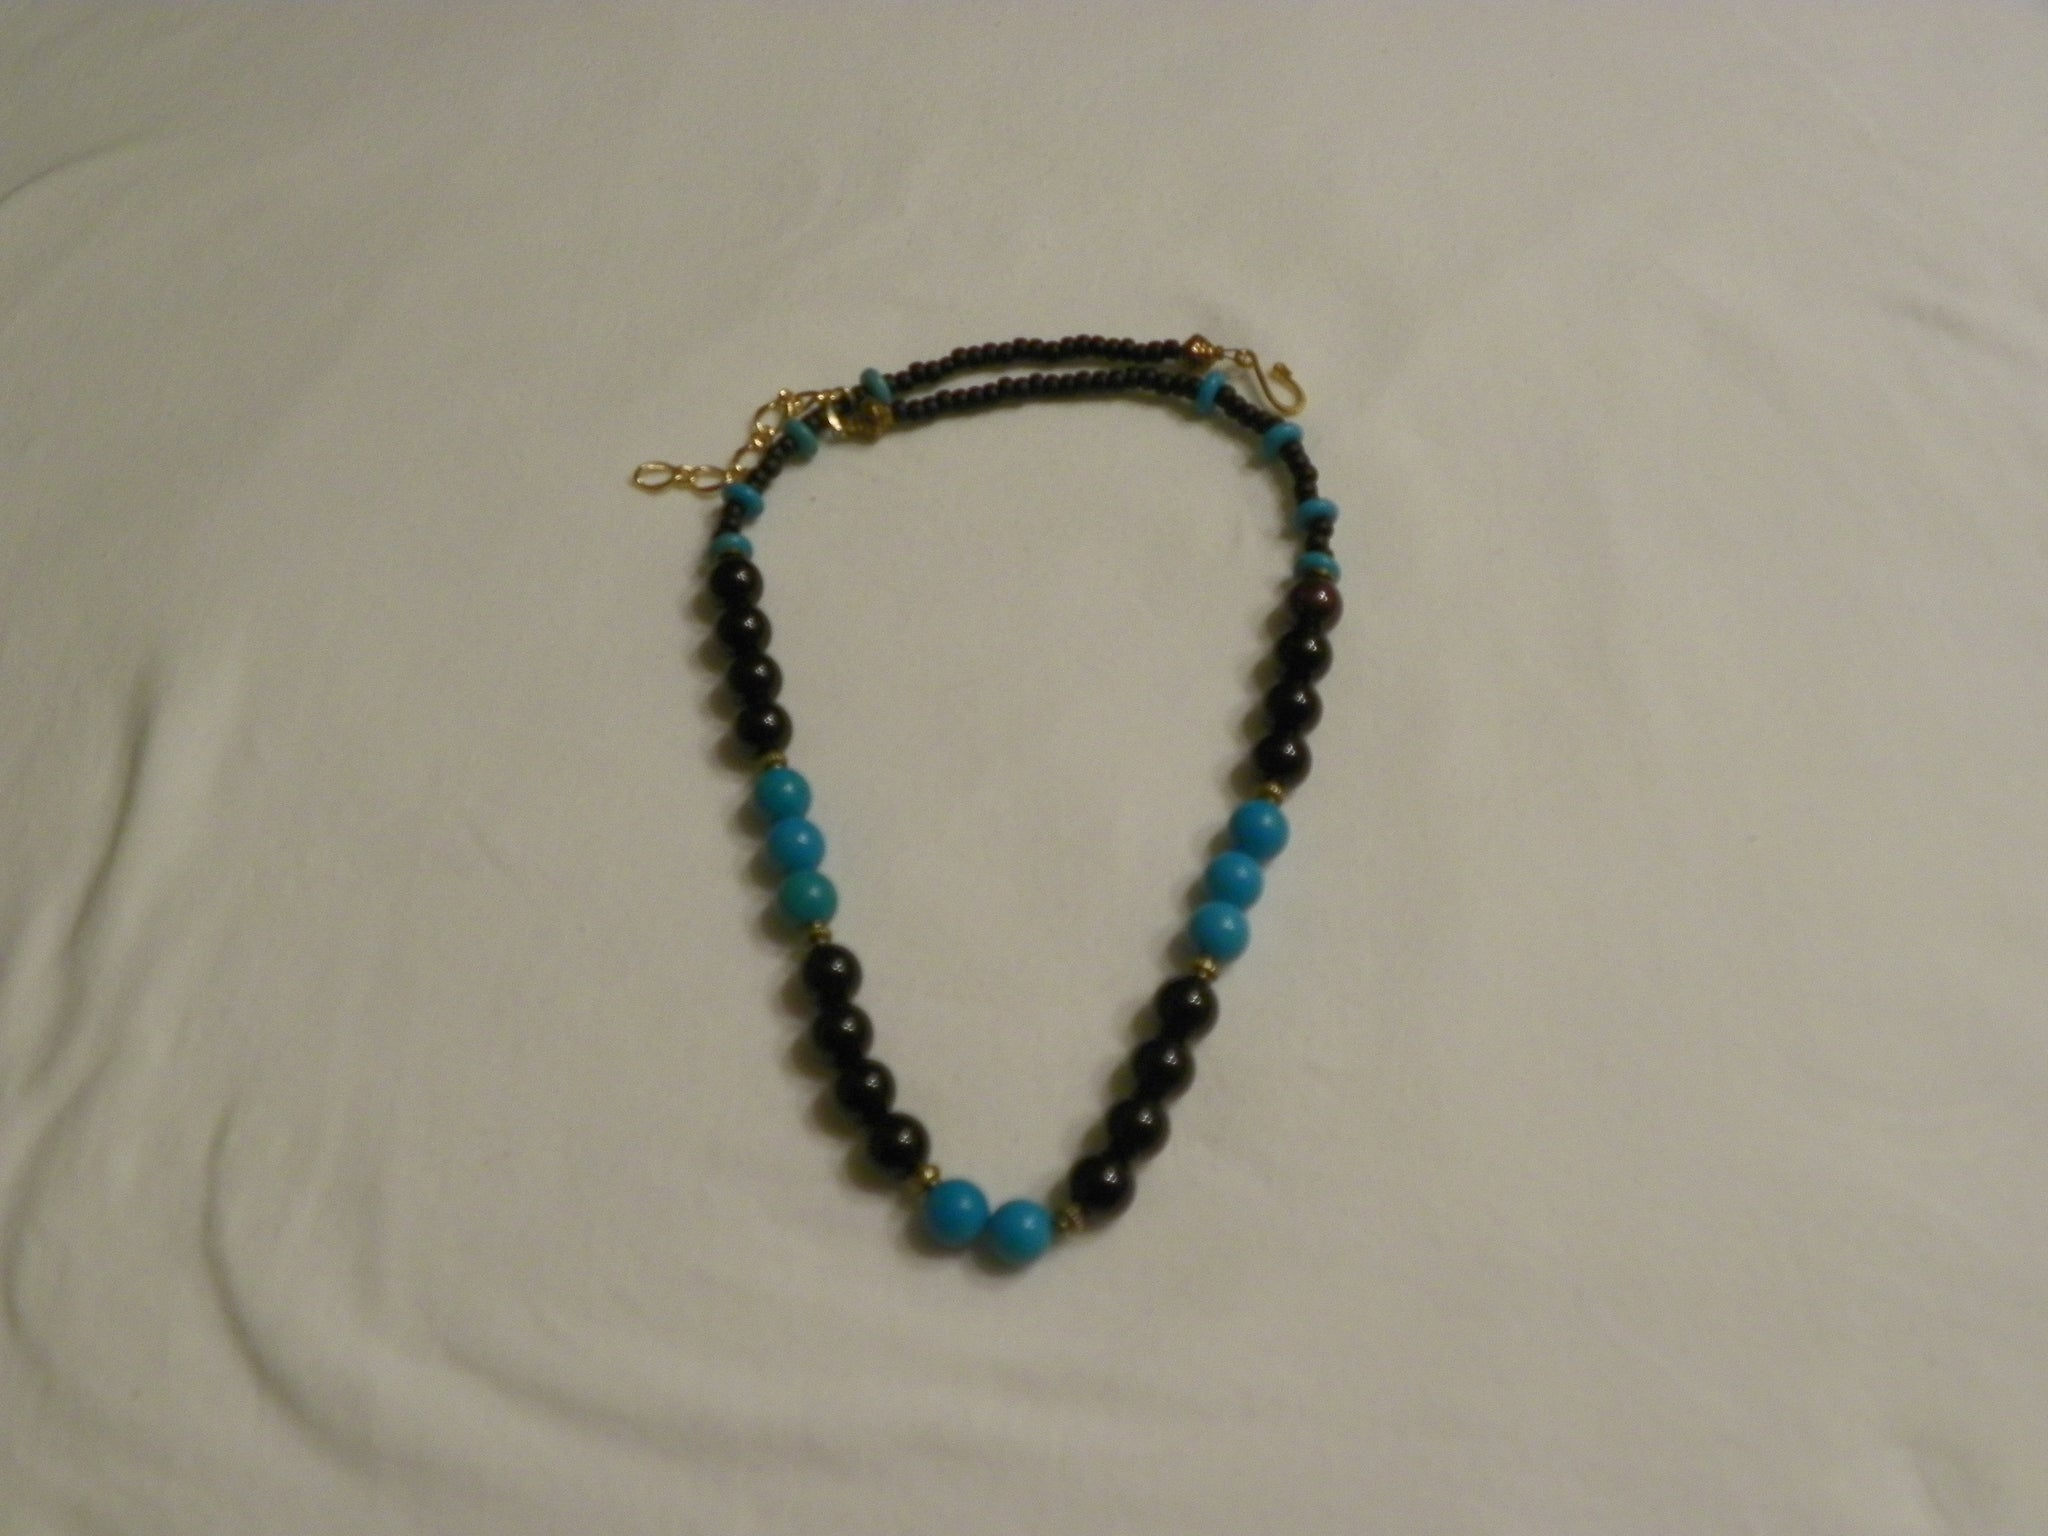 Single Strand Round Onyx and Turquoise Stones 6mm Necklace